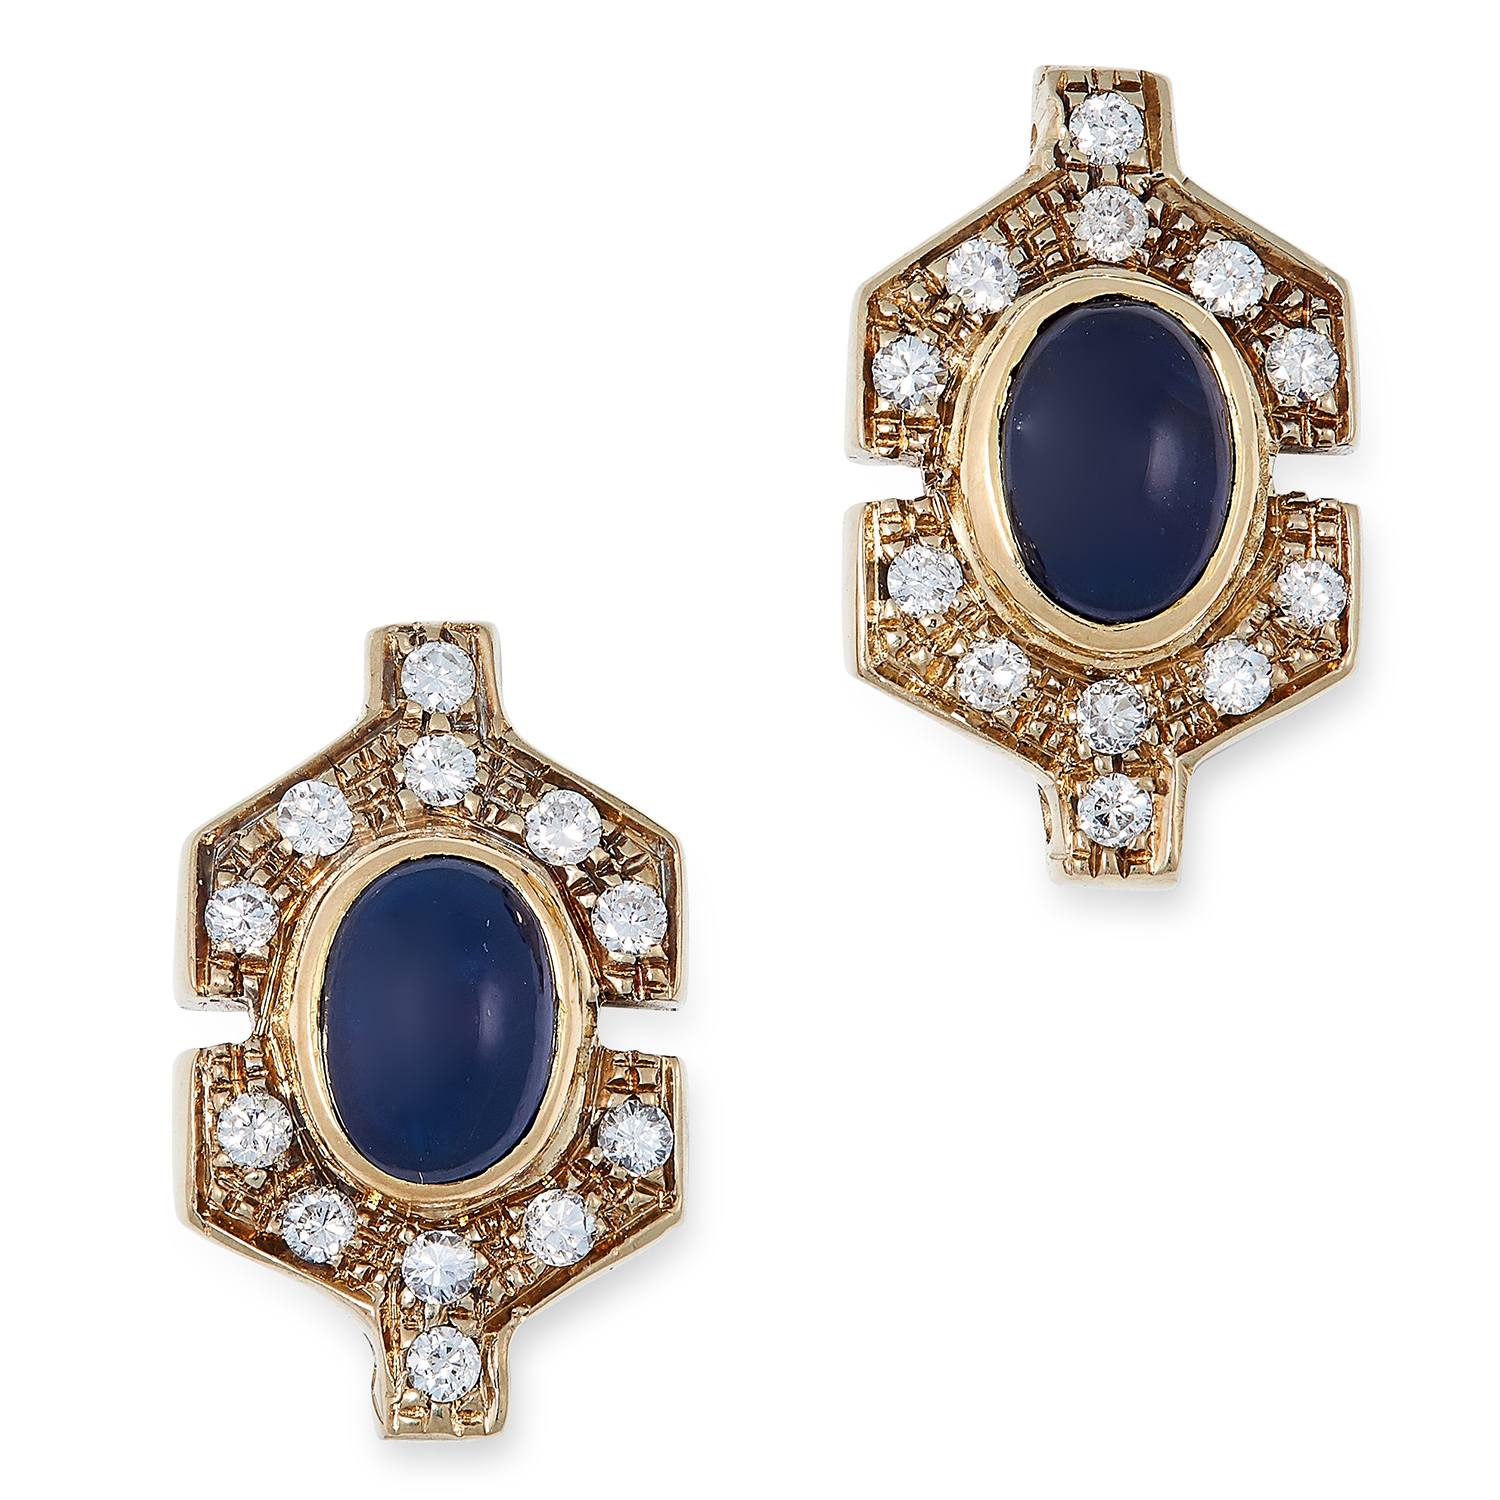 Los 5 - A PAIR OF SAPPHIRE AND DIAMOND EARRINGS each set with a cabochon sapphire in a border of round cut